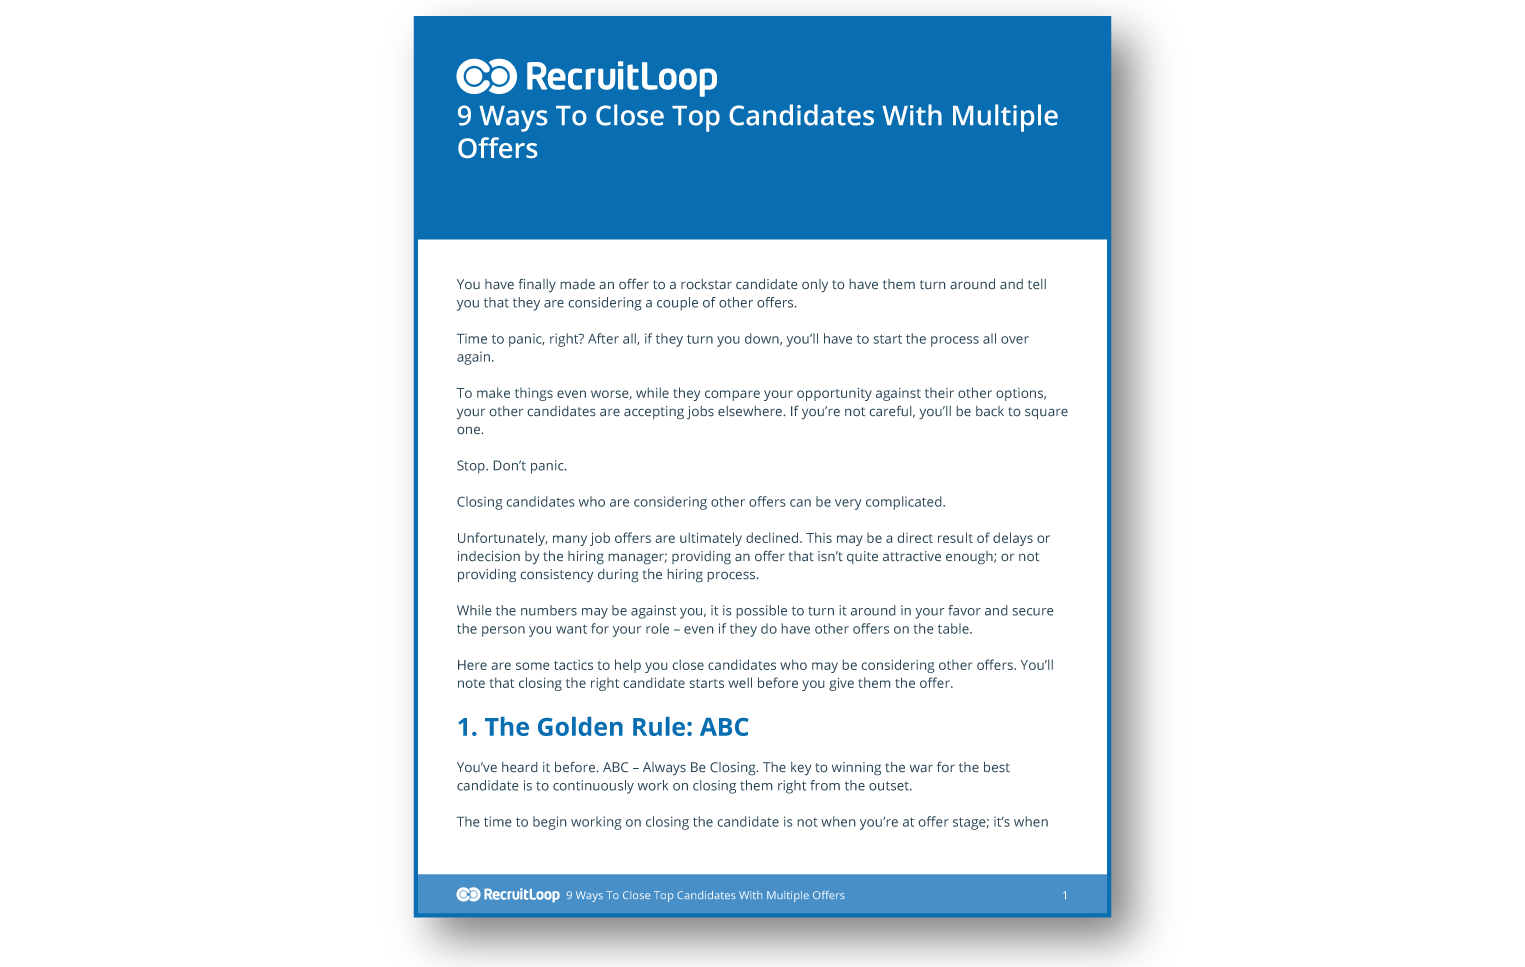 http://blog.recruitloop.com/wp-content/uploads/2016/02/9-Ways-To-Close-Top-Candidates-With-Multiple-Offers_366x232-1.png